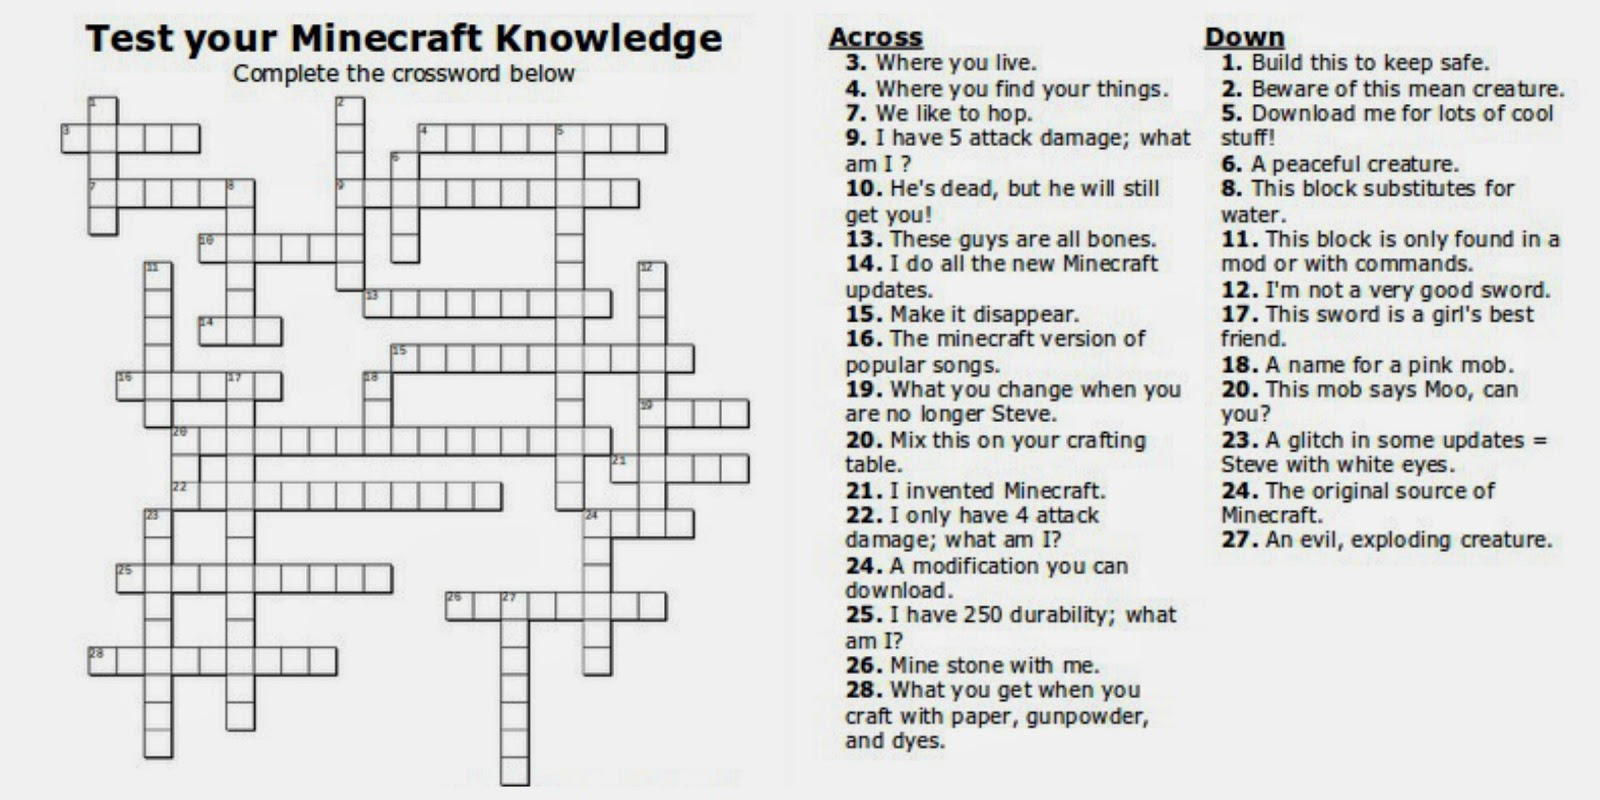 Free Printable Minecraft Crossword Search: Test Your Minecraft - Make Your Own Crossword Puzzle Free Printable